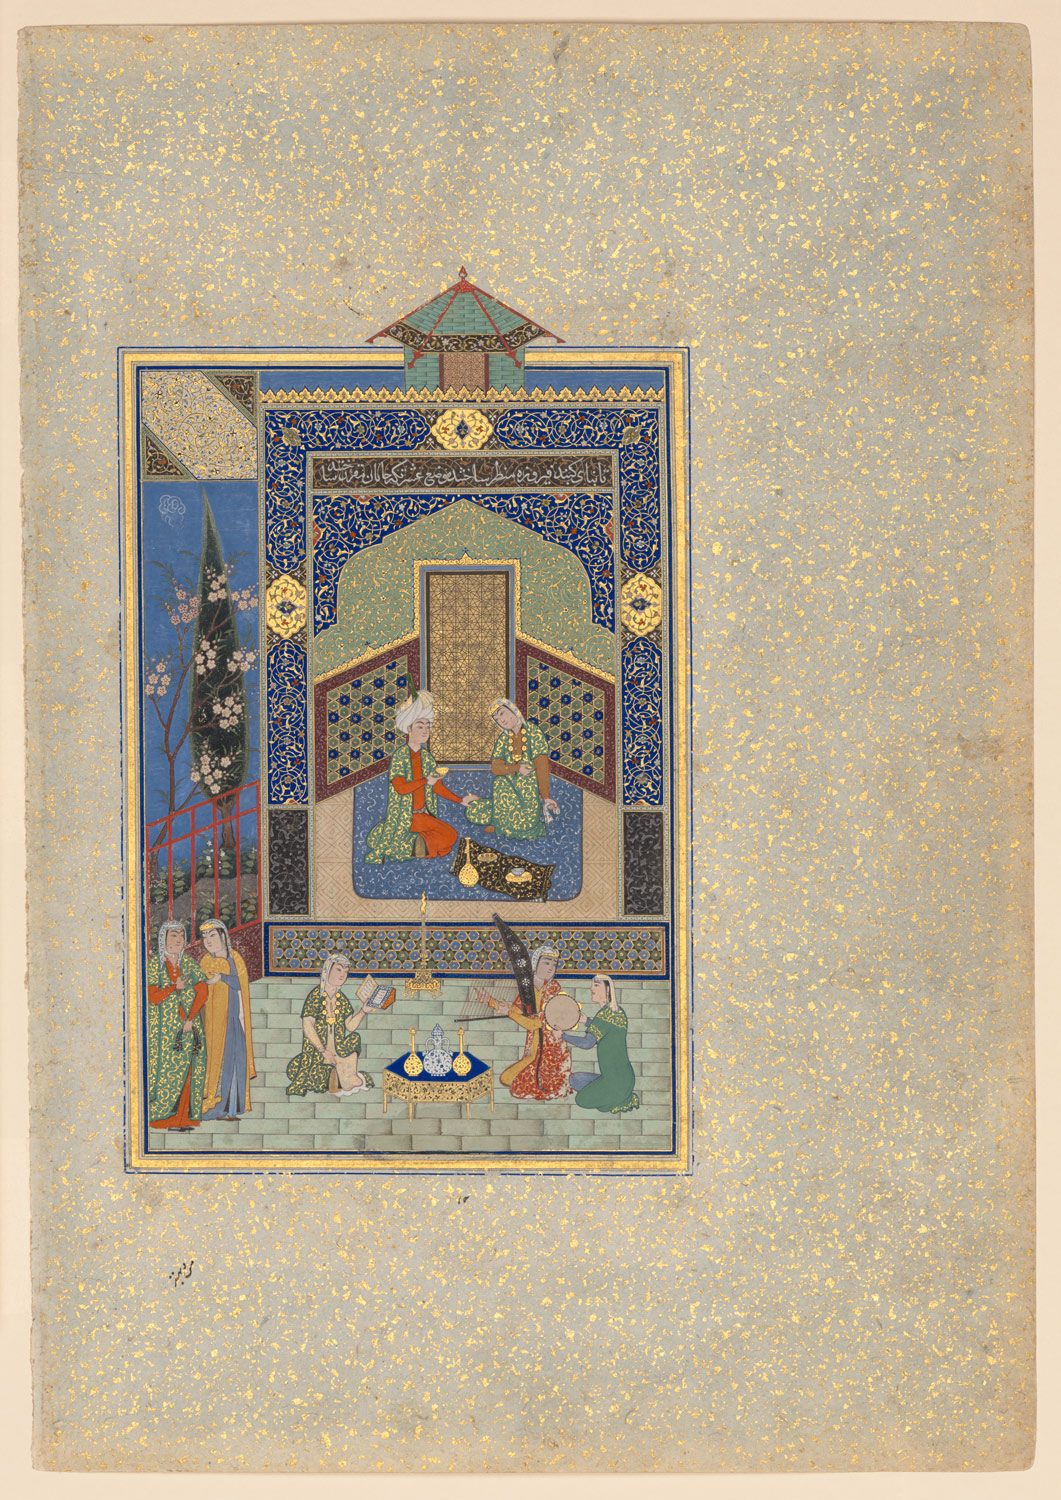 Bahram Gur in the Turquoise Palace on Wednesday, Folio 216 from a Khamsa (Quintet) of Nizami